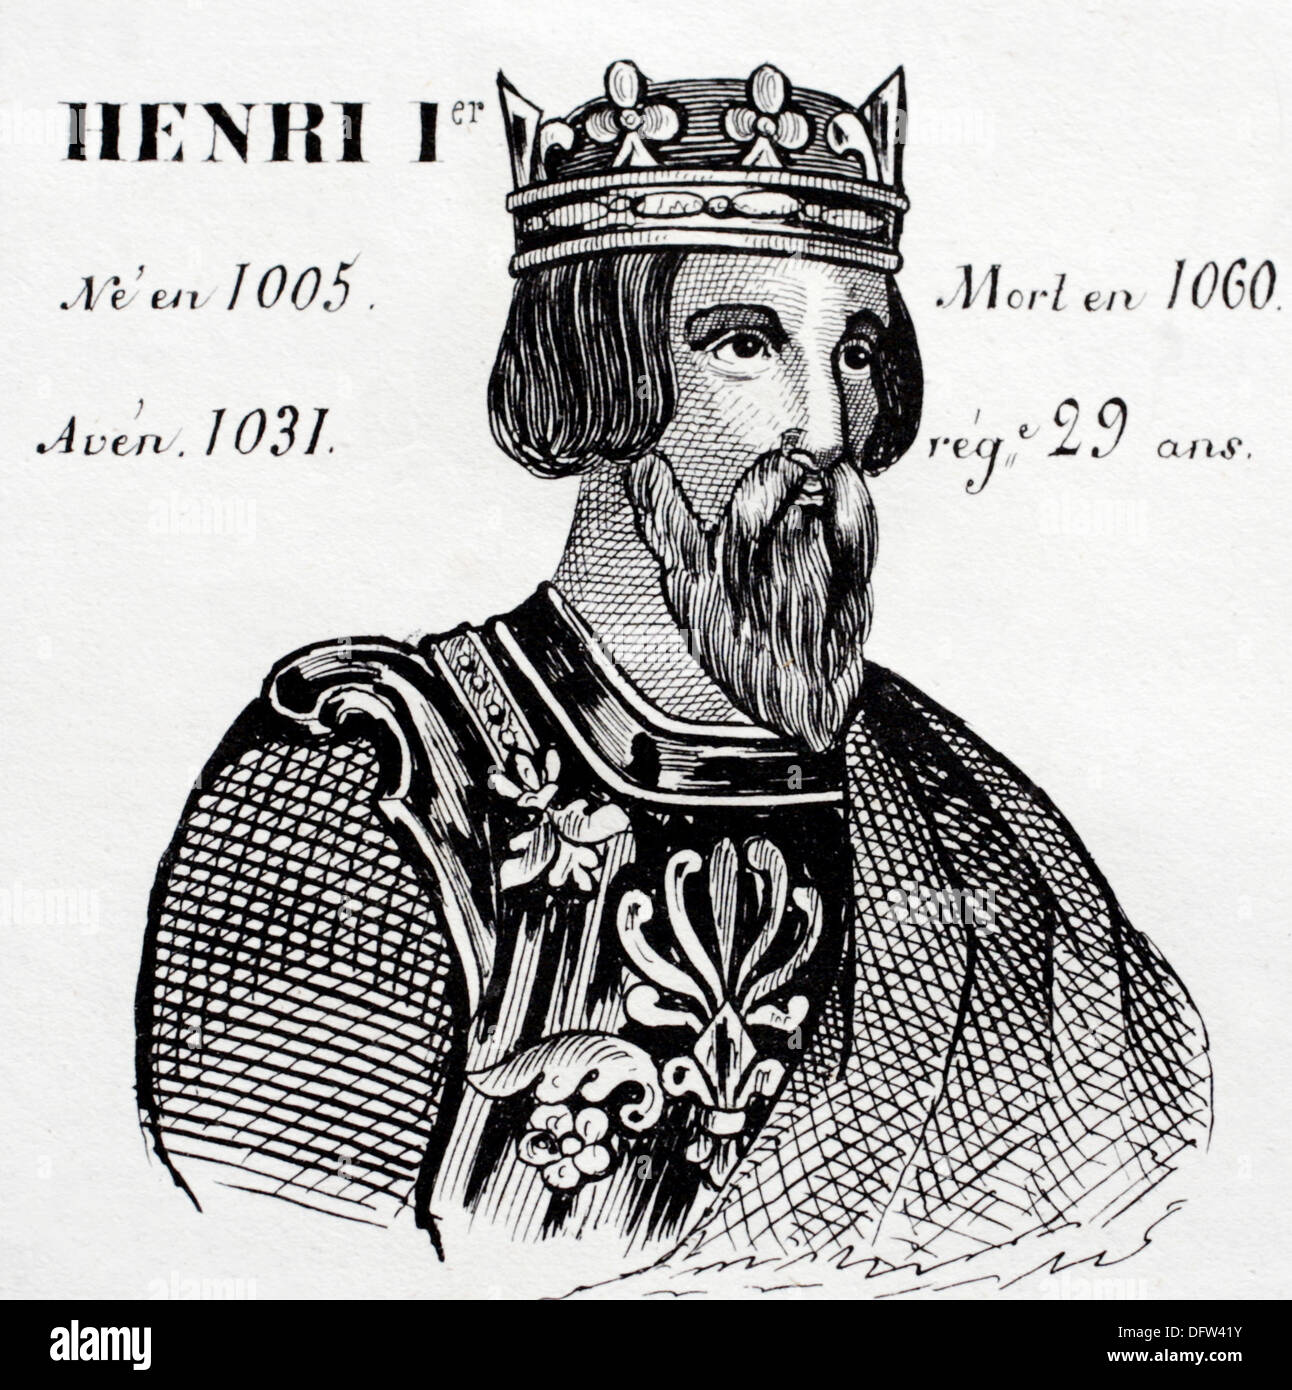 Henri 1st., king of France from 1031 to 1060. Histoire de France´ by J.Henry. Paris, 1842. Stock Photo